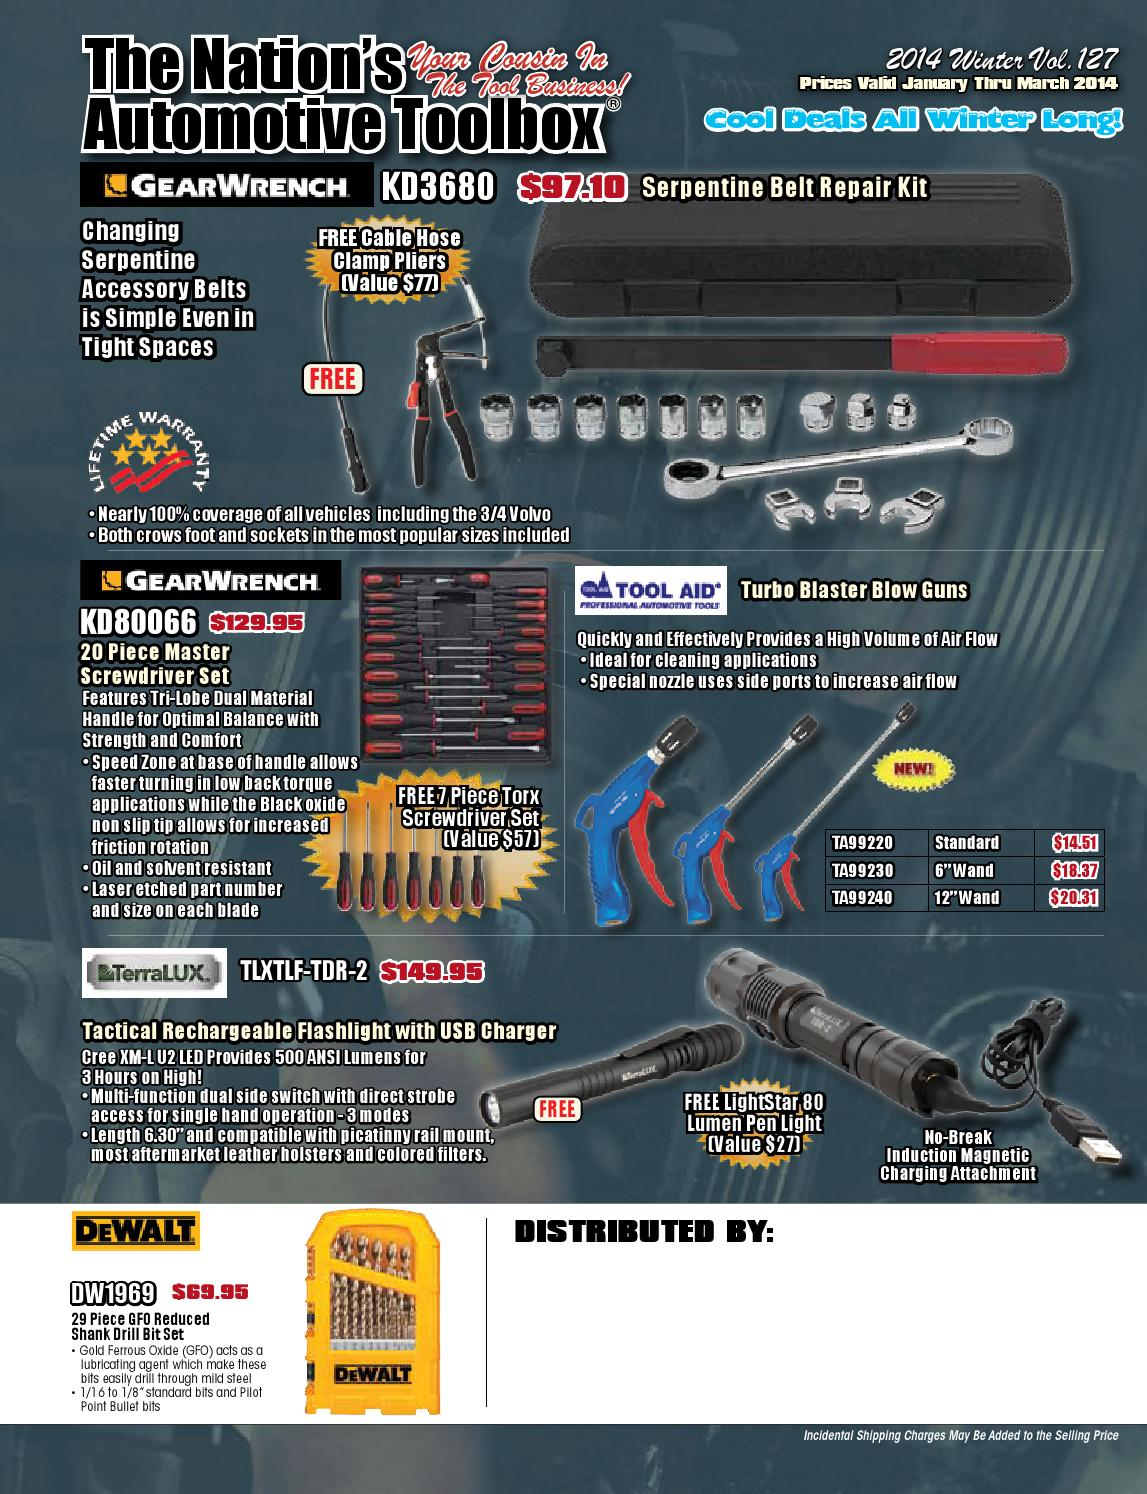 hight resolution of the nation s automotive toolbox winter 2014 by the nation s automotive tool box issuu